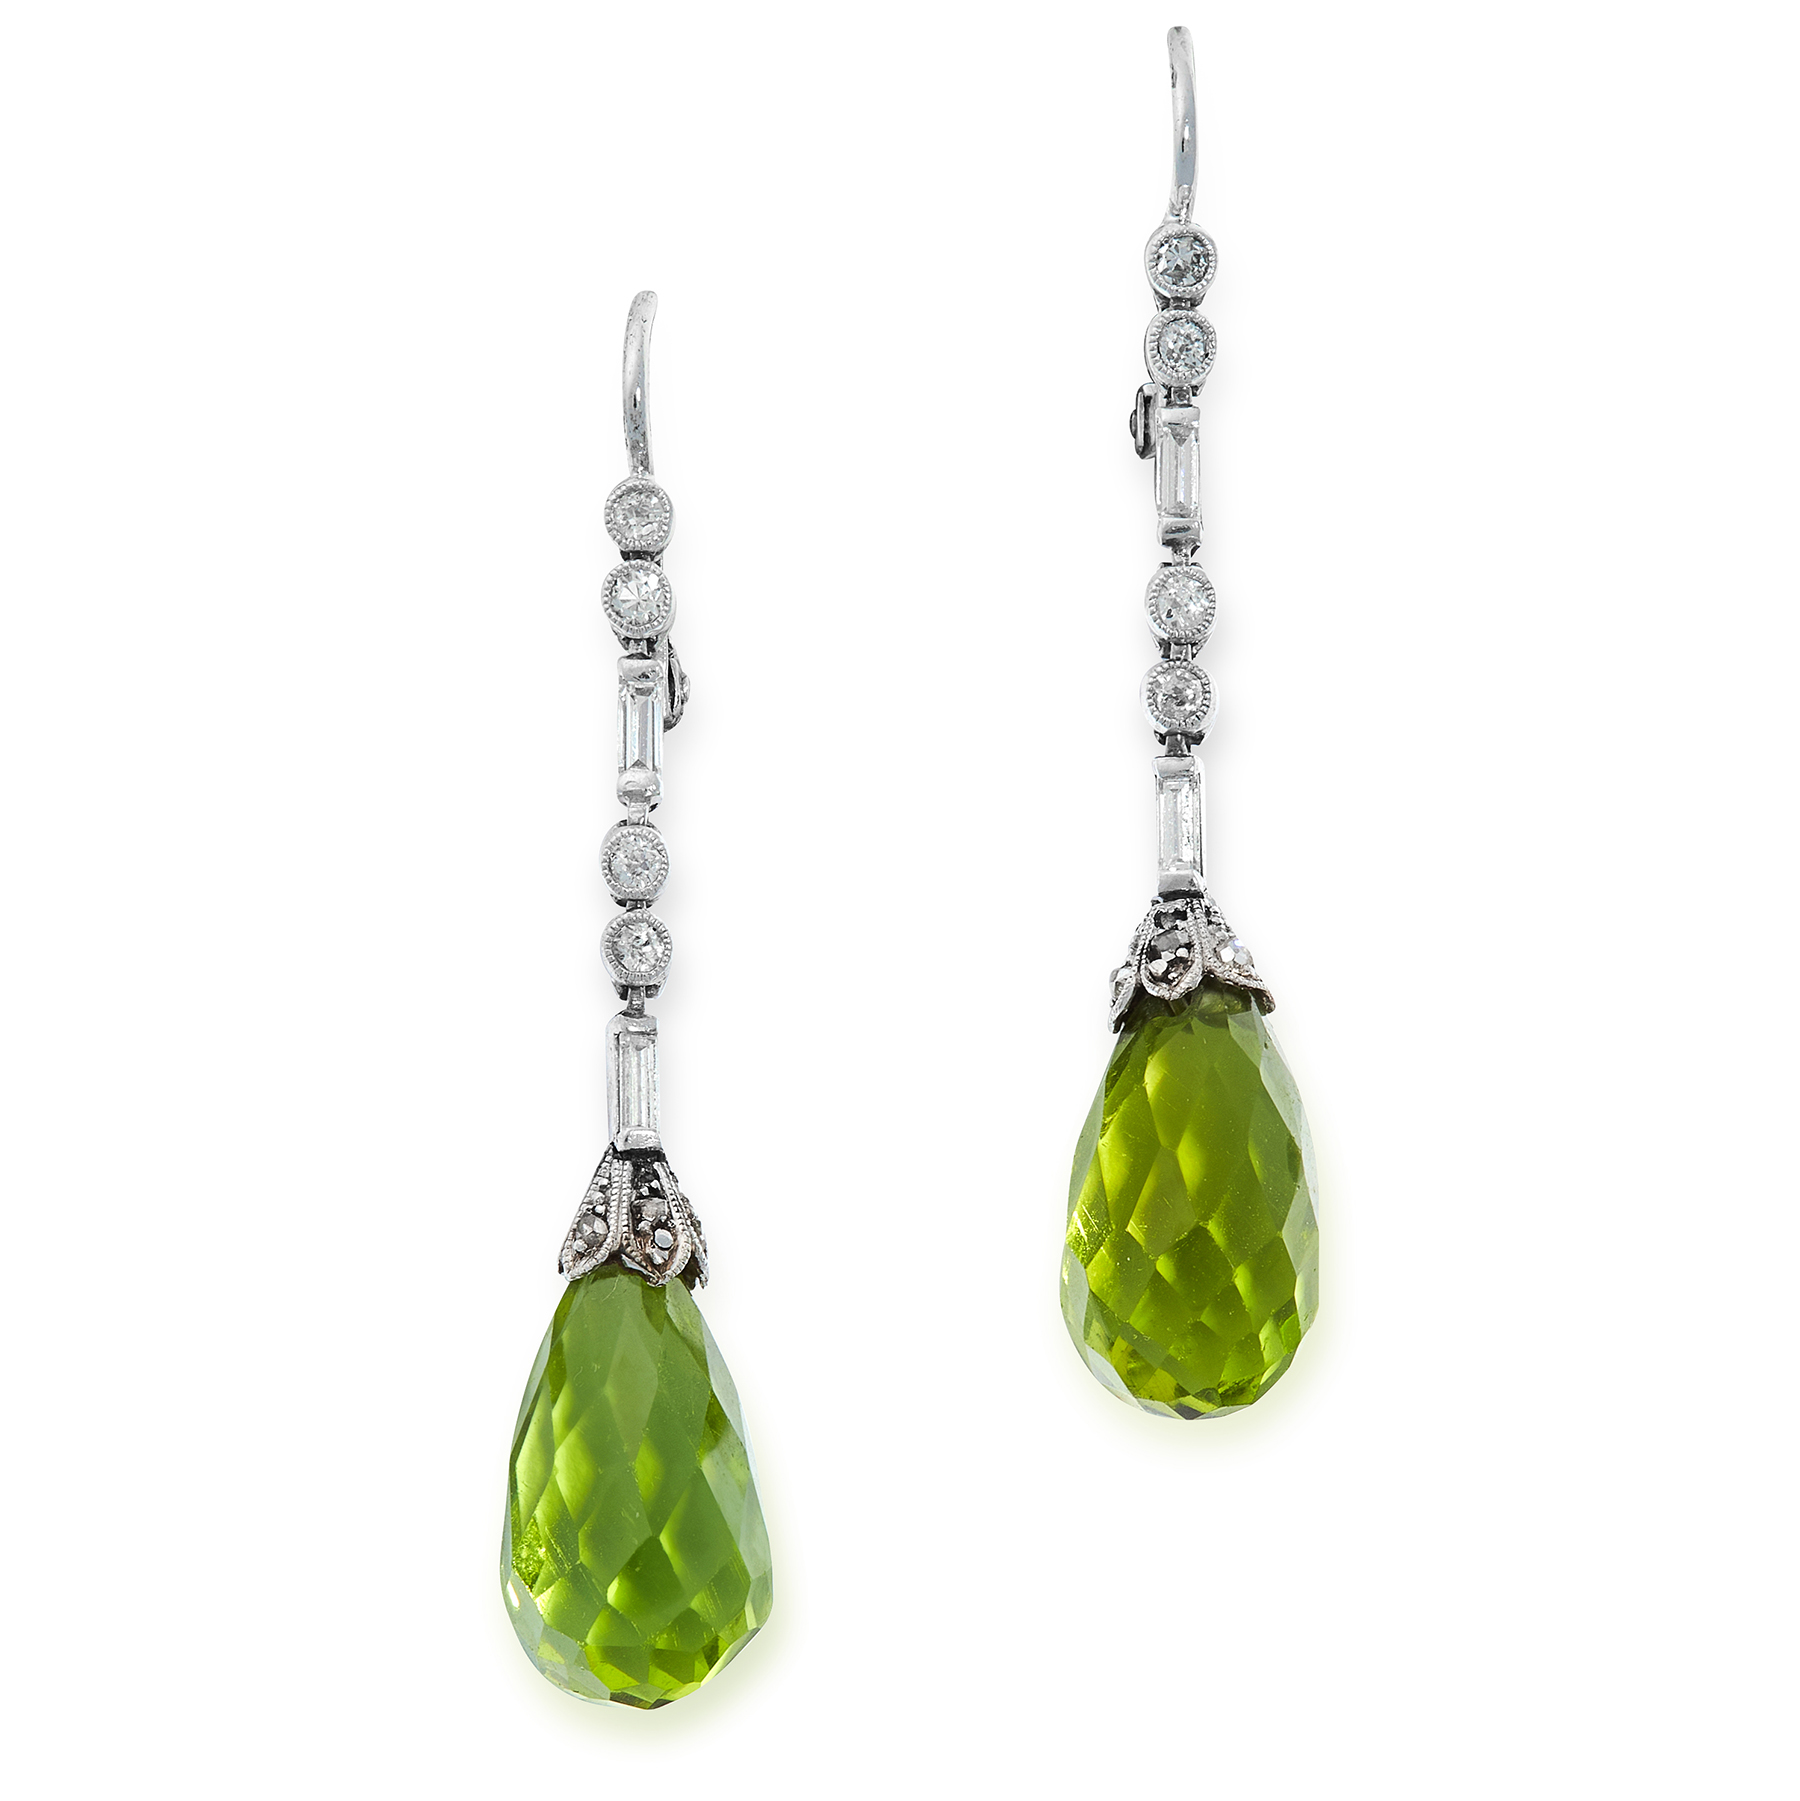 A PAIR OF ART DECO PERIDOT AND DIAMOND EARRINGS, EARLY 20TH CENTURY each set with a briolette drop